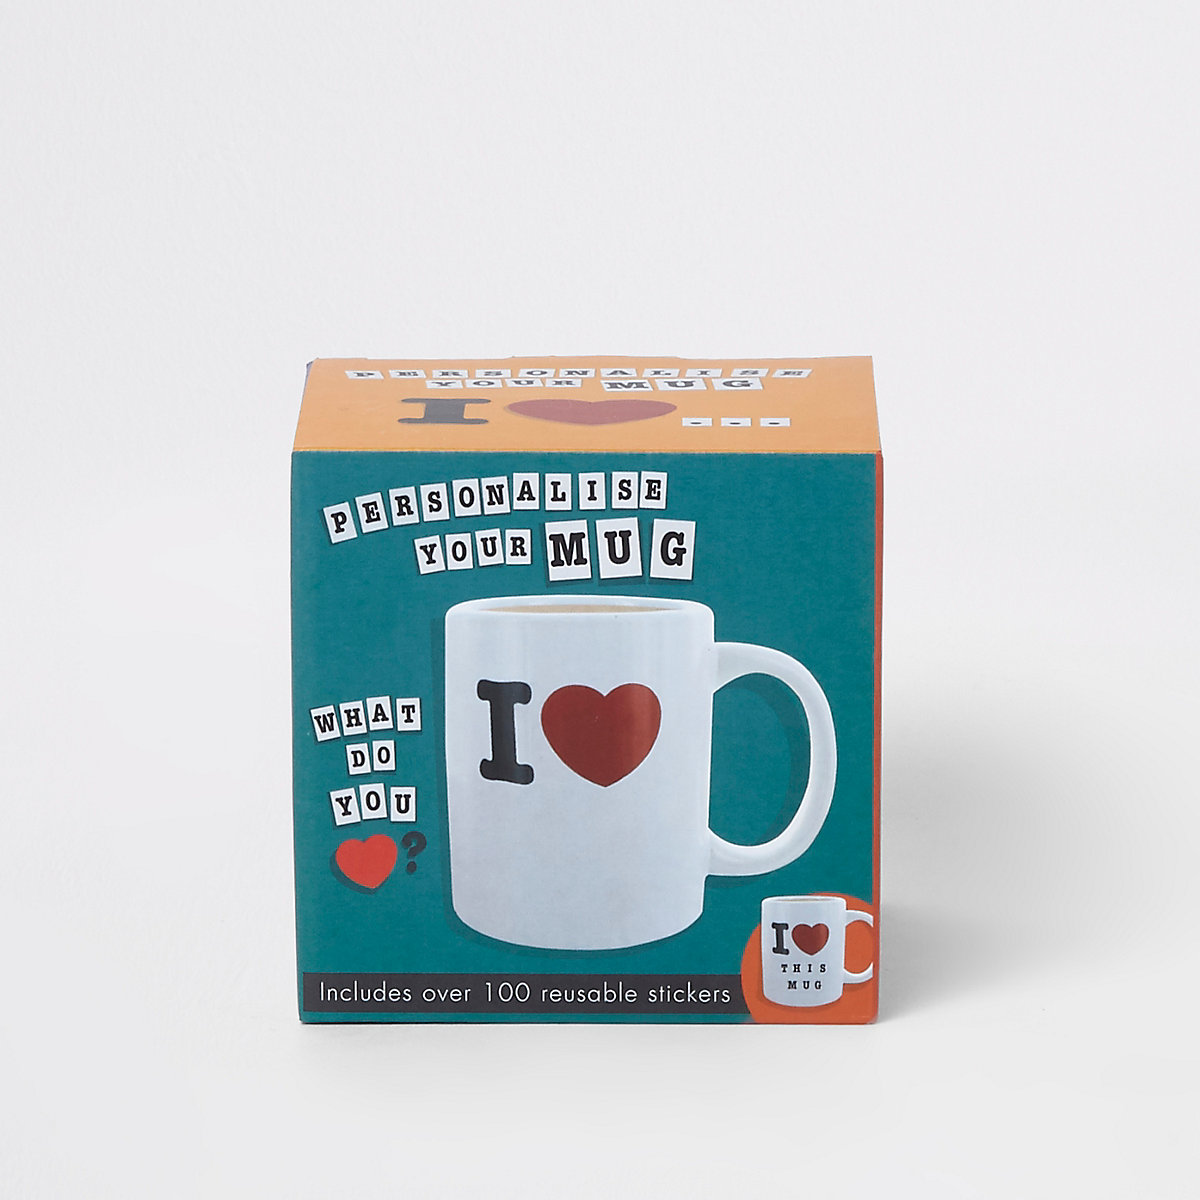 Personalized stickers 'I love' mug